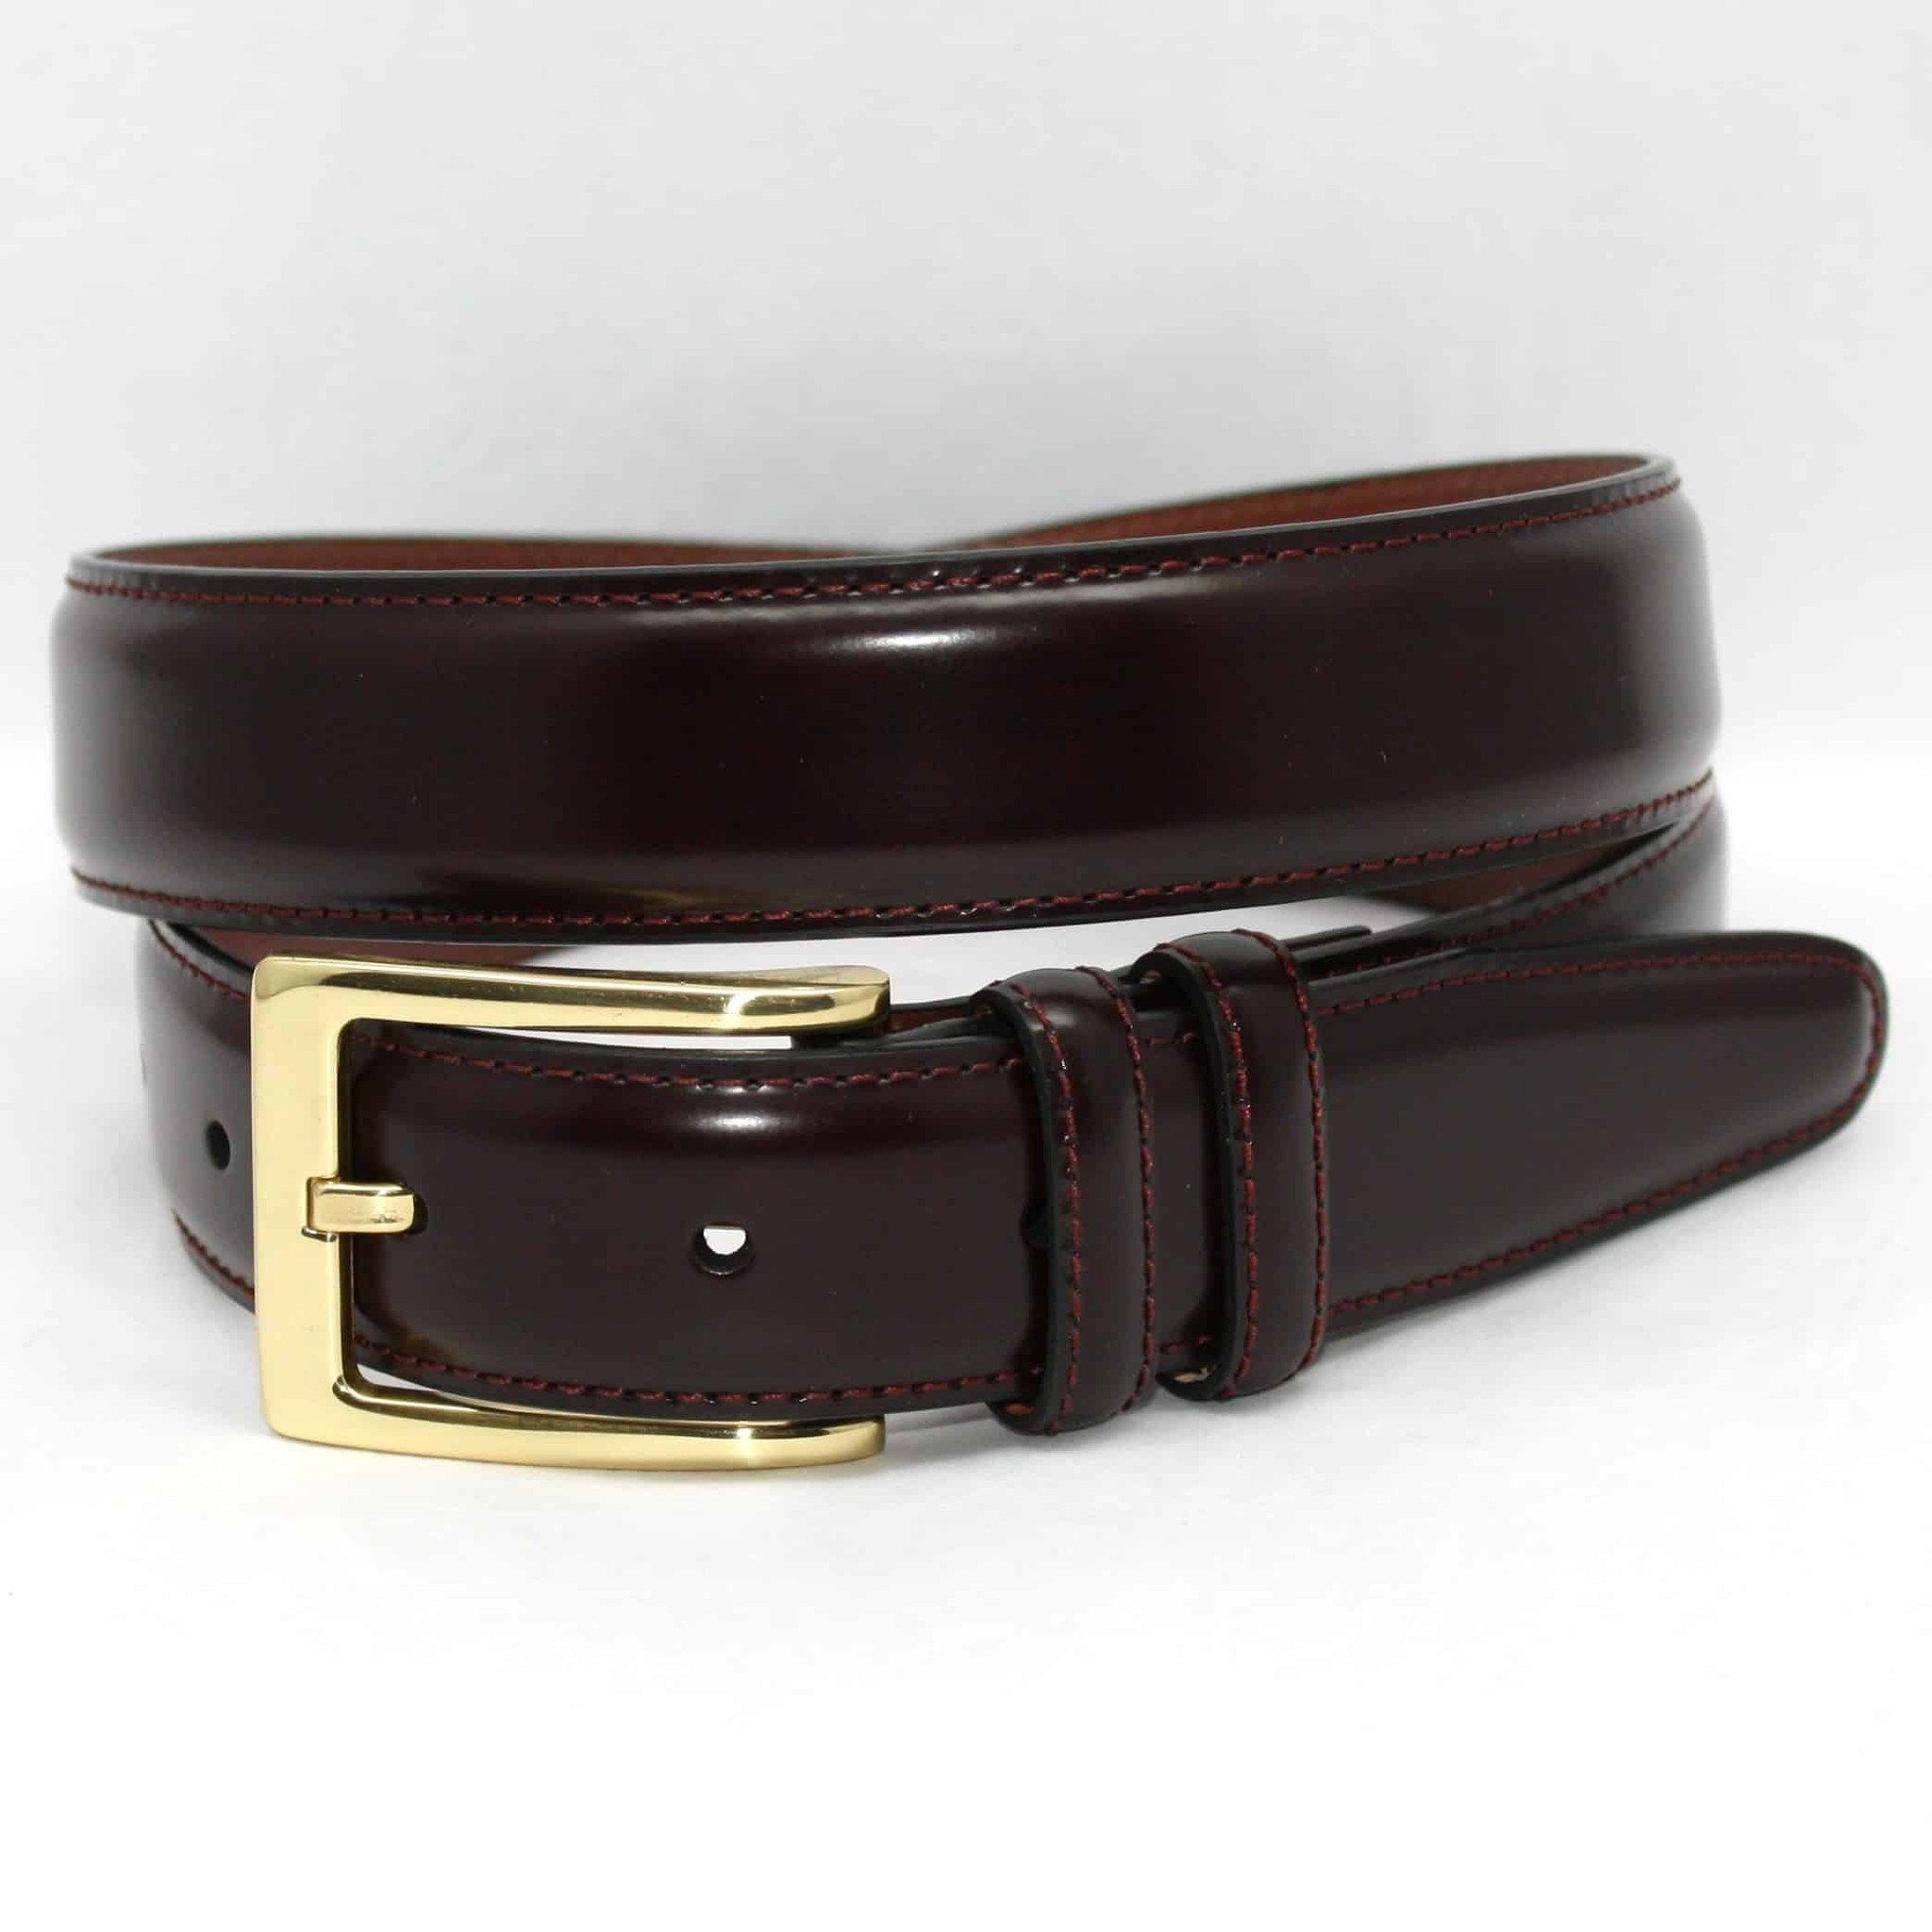 Antigua Leather Belt - Burgundy,BELT,GentRow.com, | GentRow.com